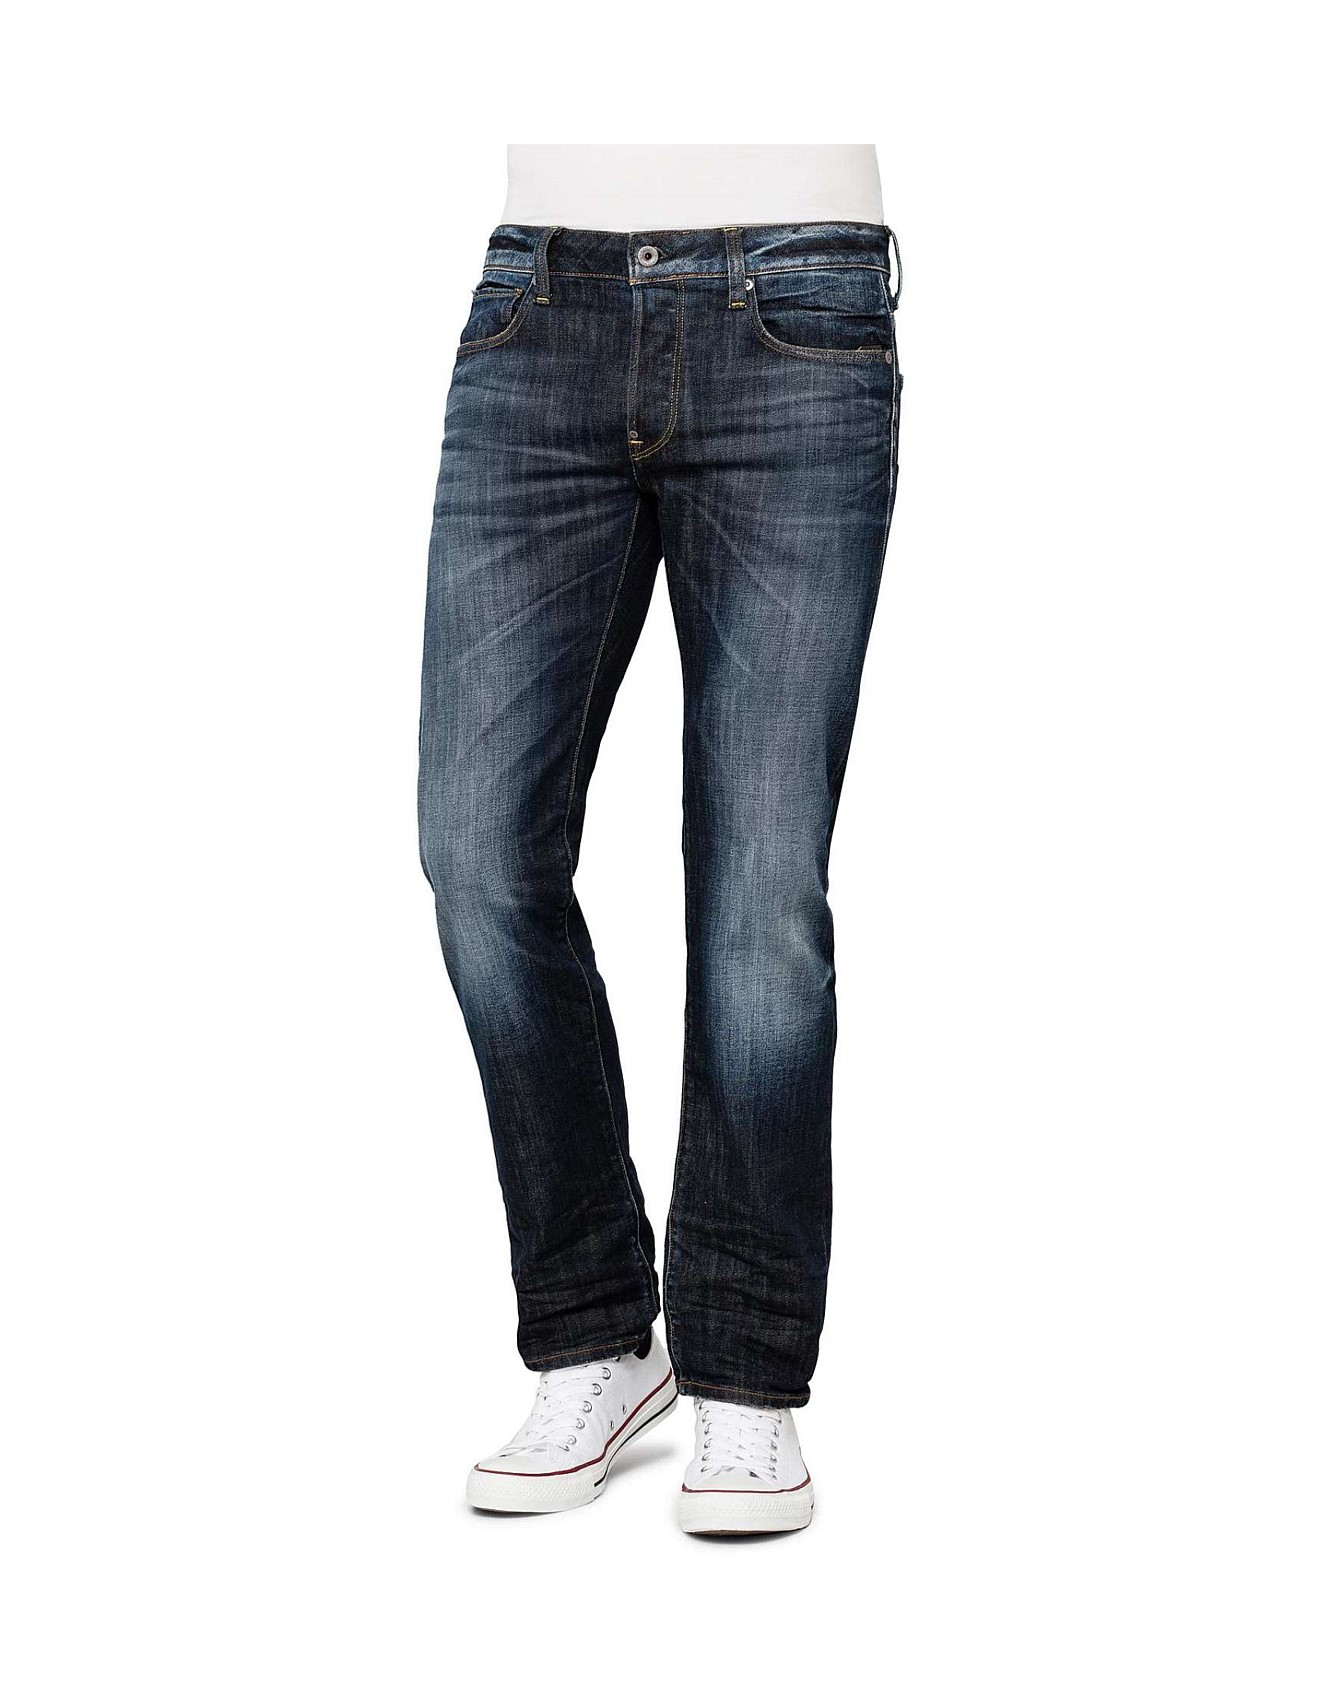 031416bc328 Defend Straight Jeans